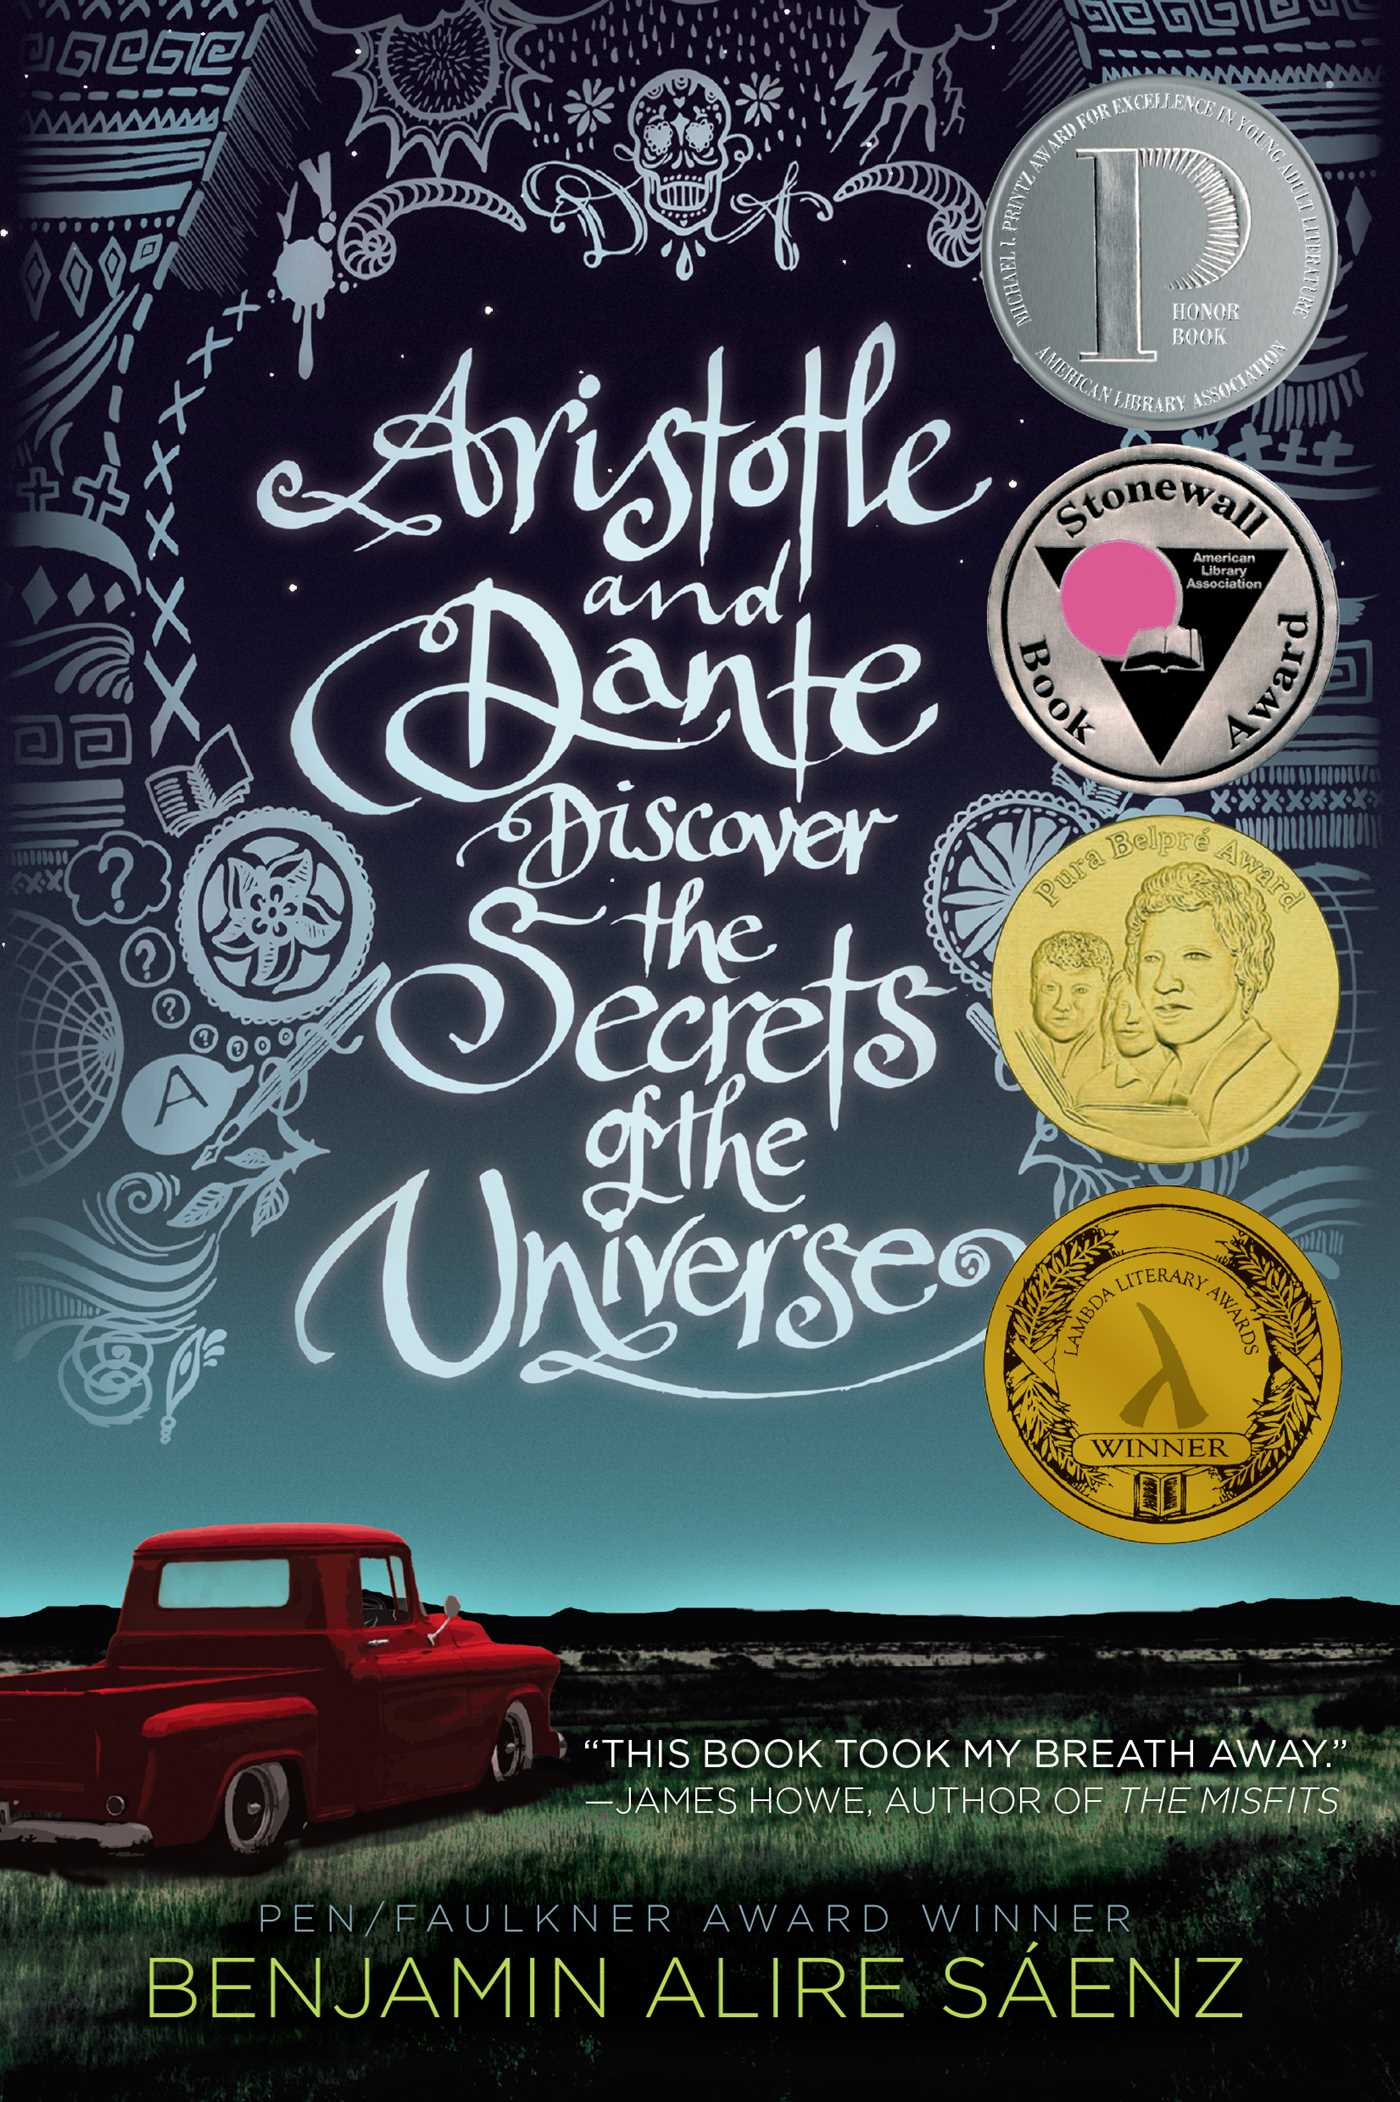 Aristotle and dante discover the secrets of the universe 9781442408944 hr